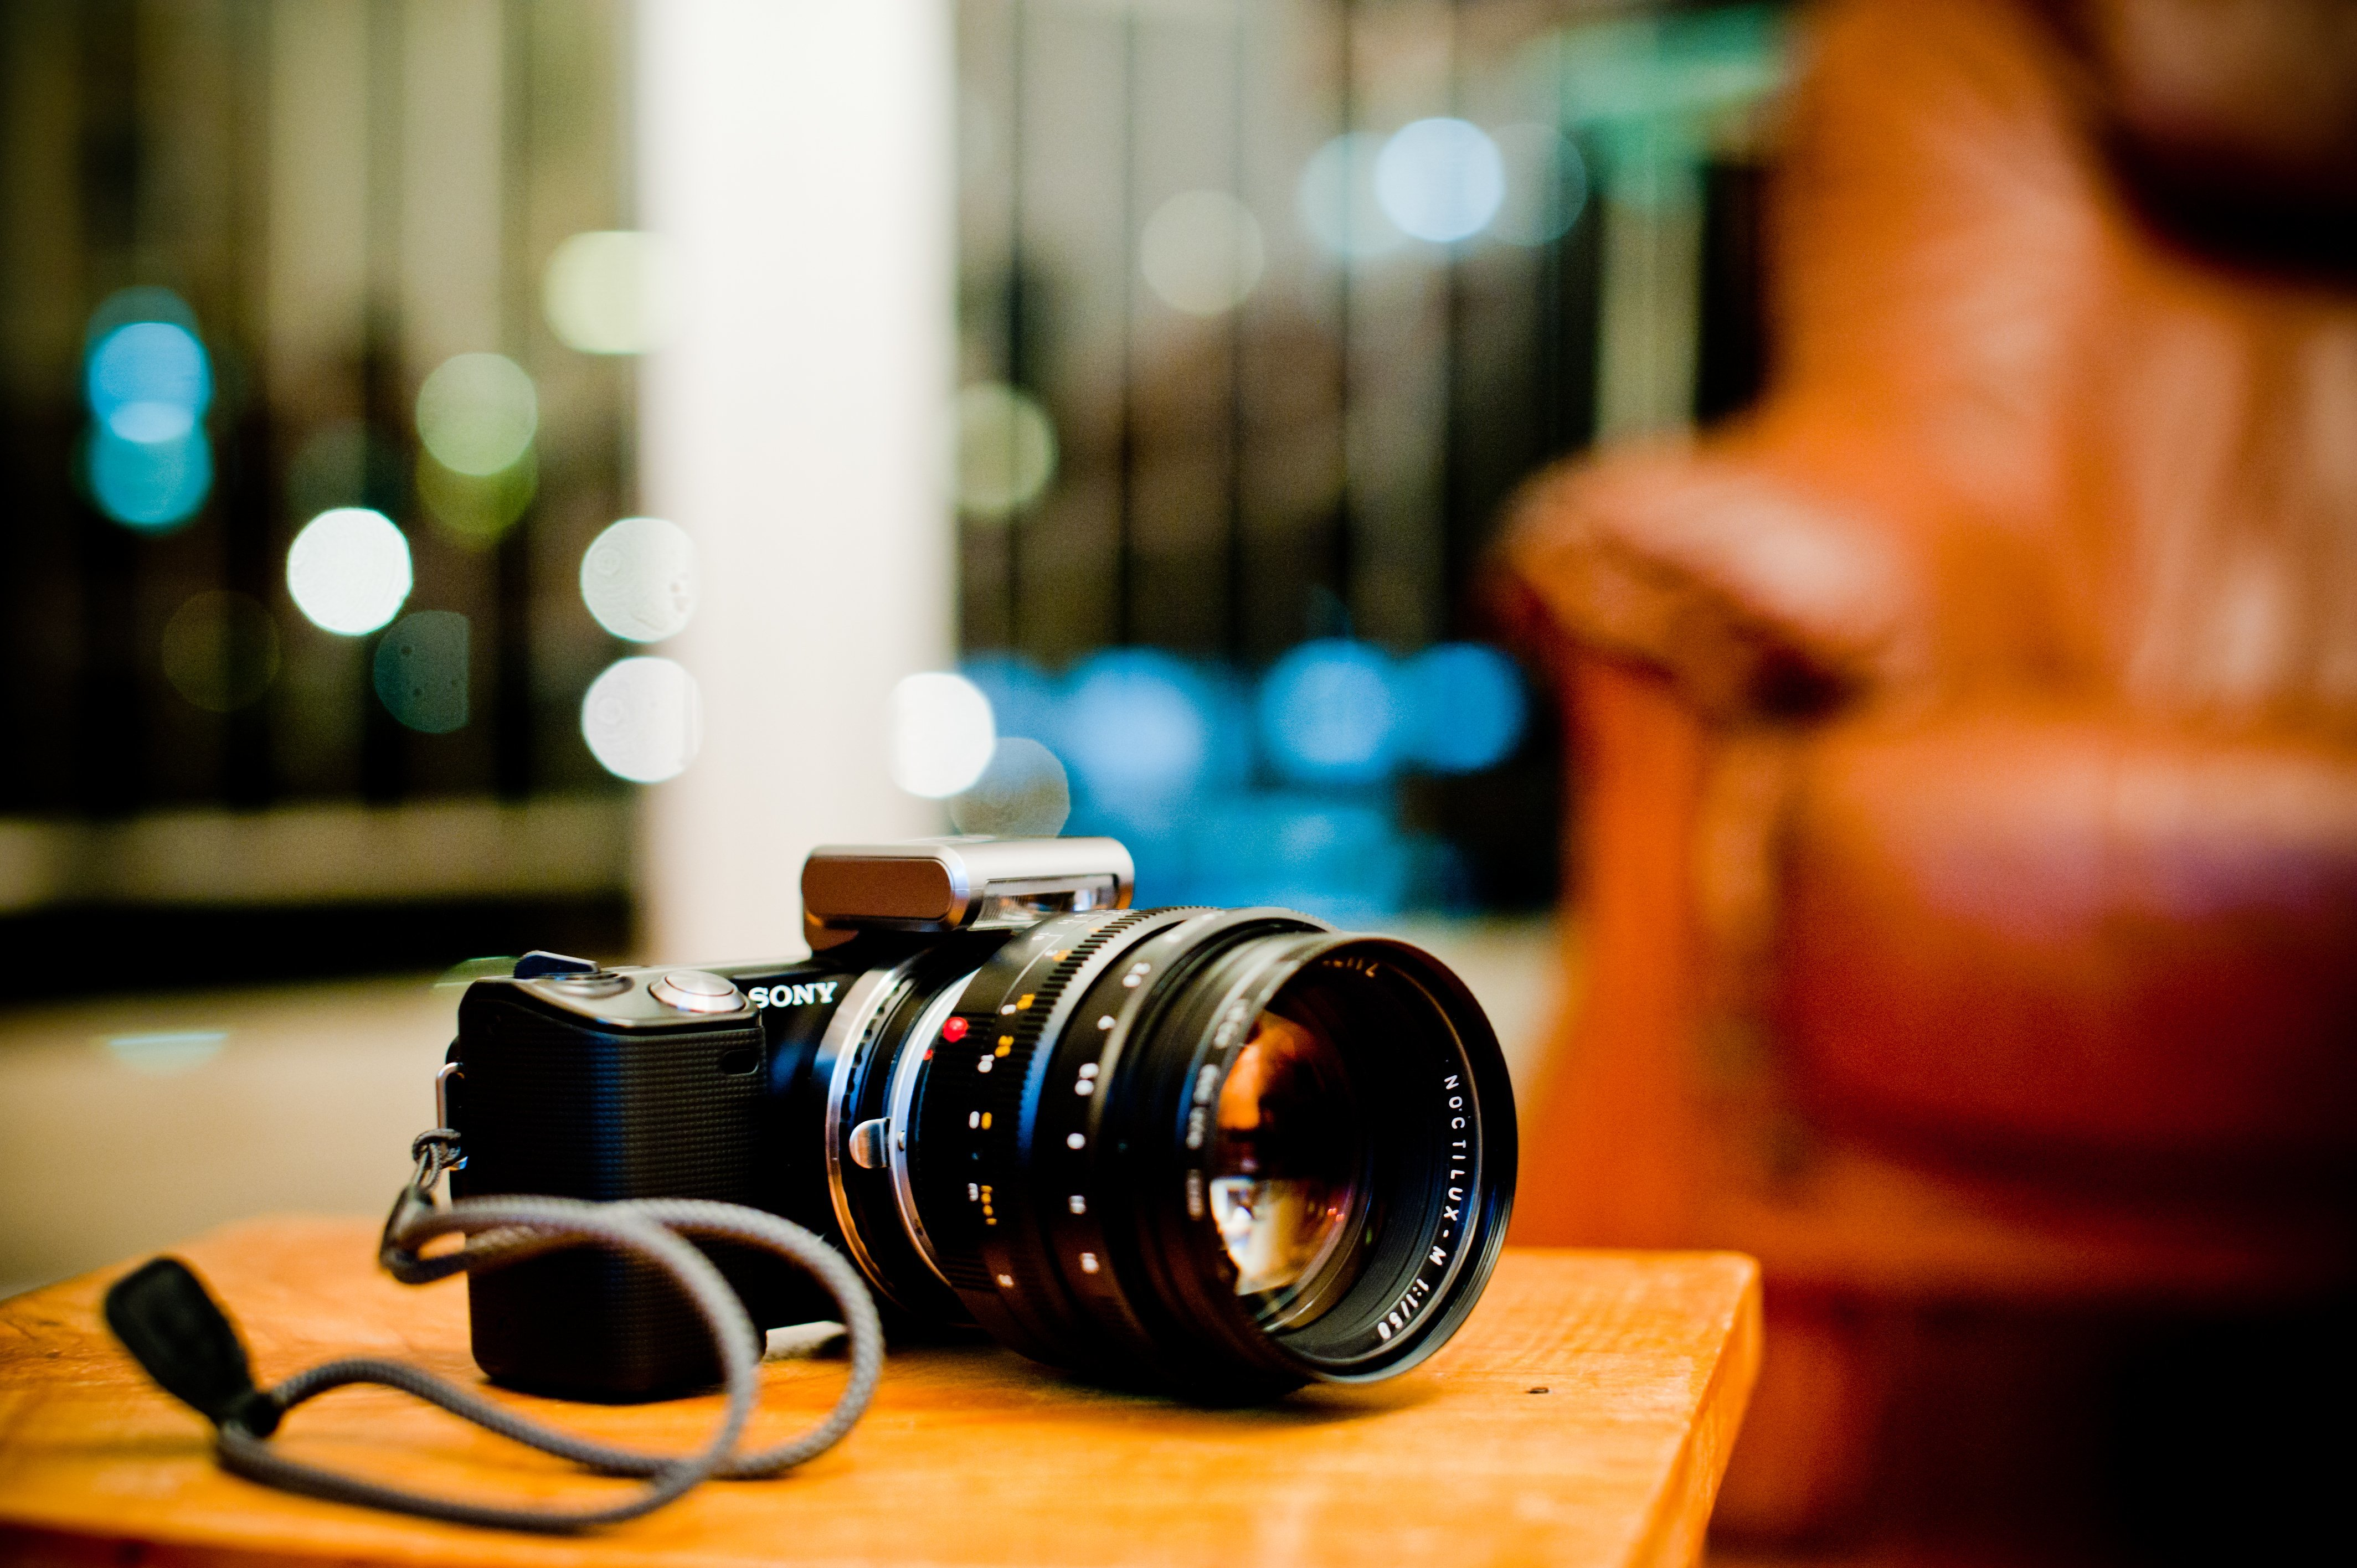 Image: Camera, Sony, lens, flare, table, lies